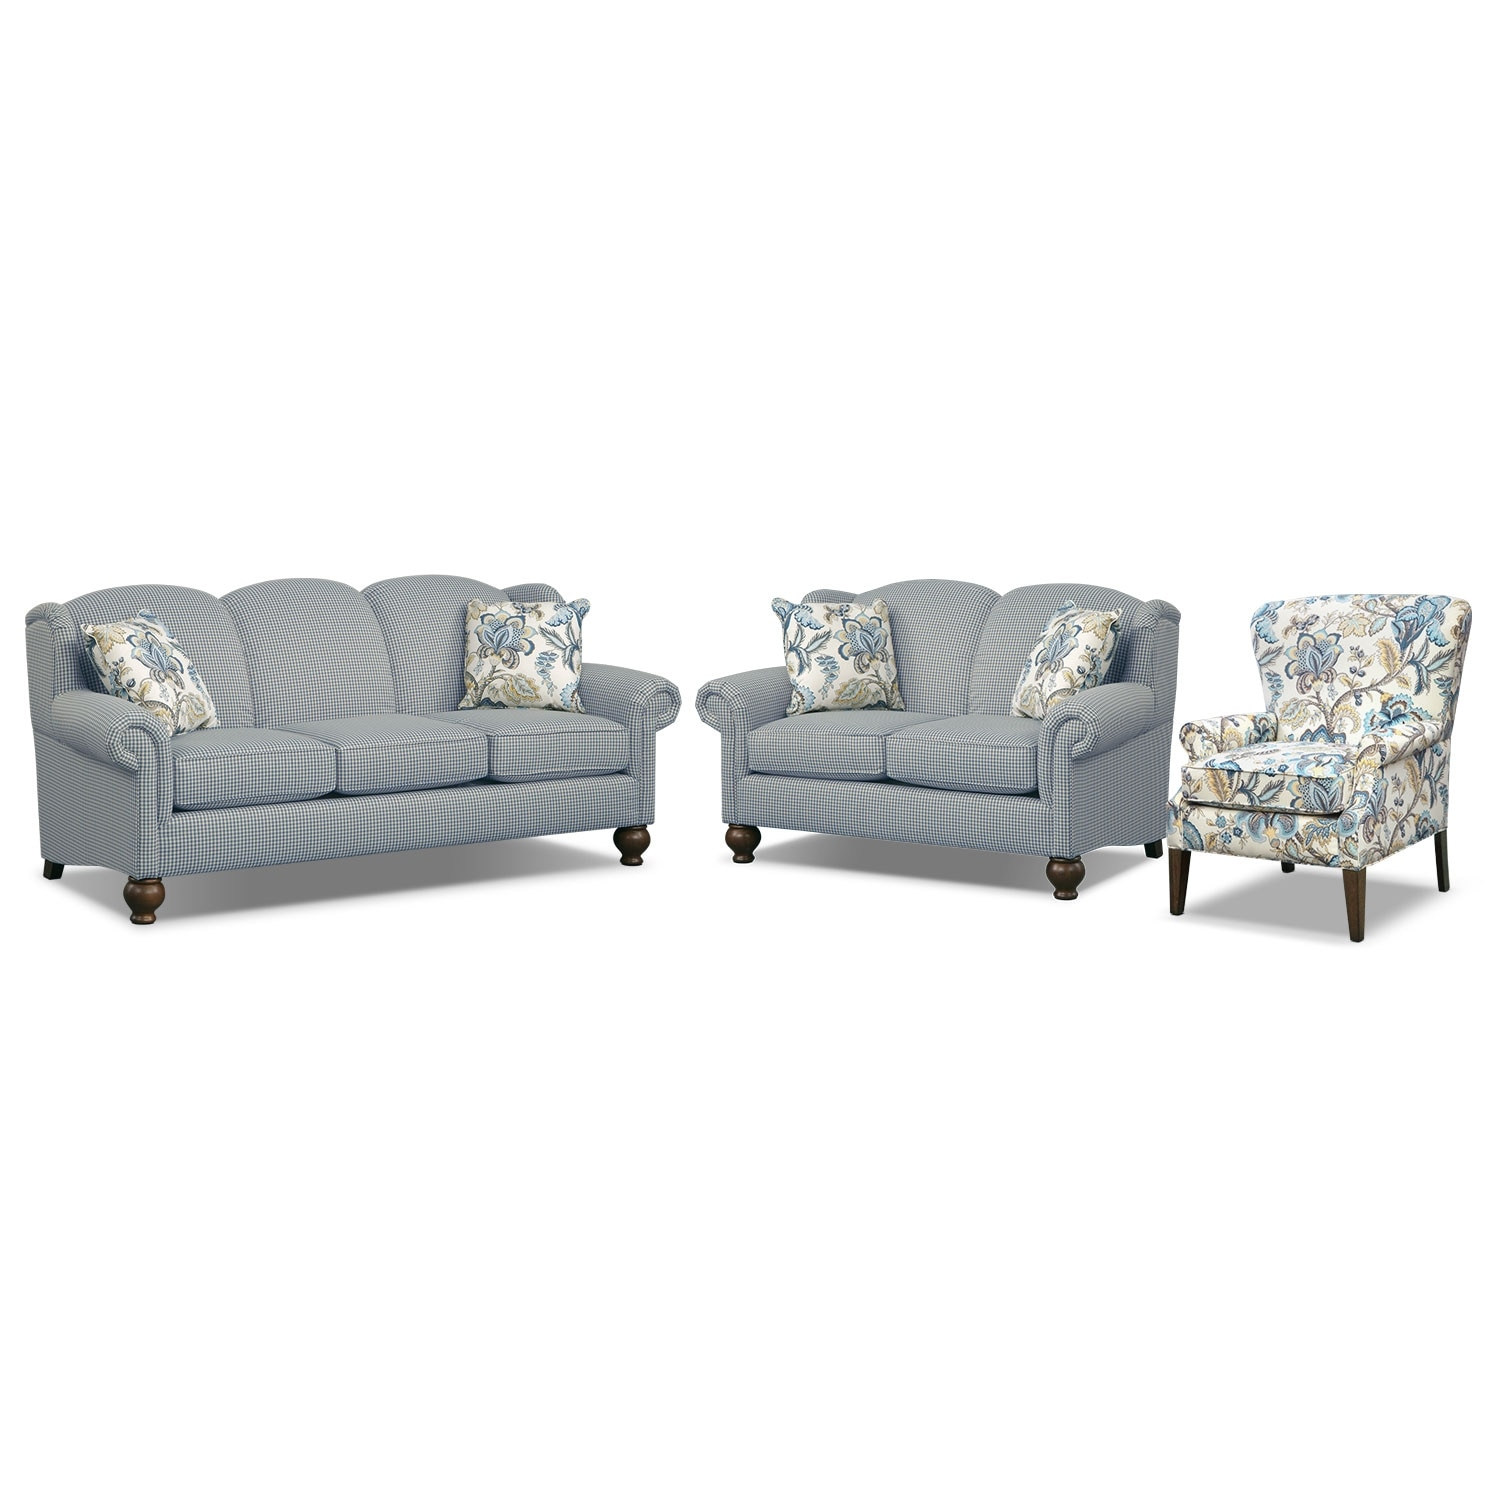 Living Room Furniture - Charlotte III 3 Pc. Living Room w/ Accent Chair